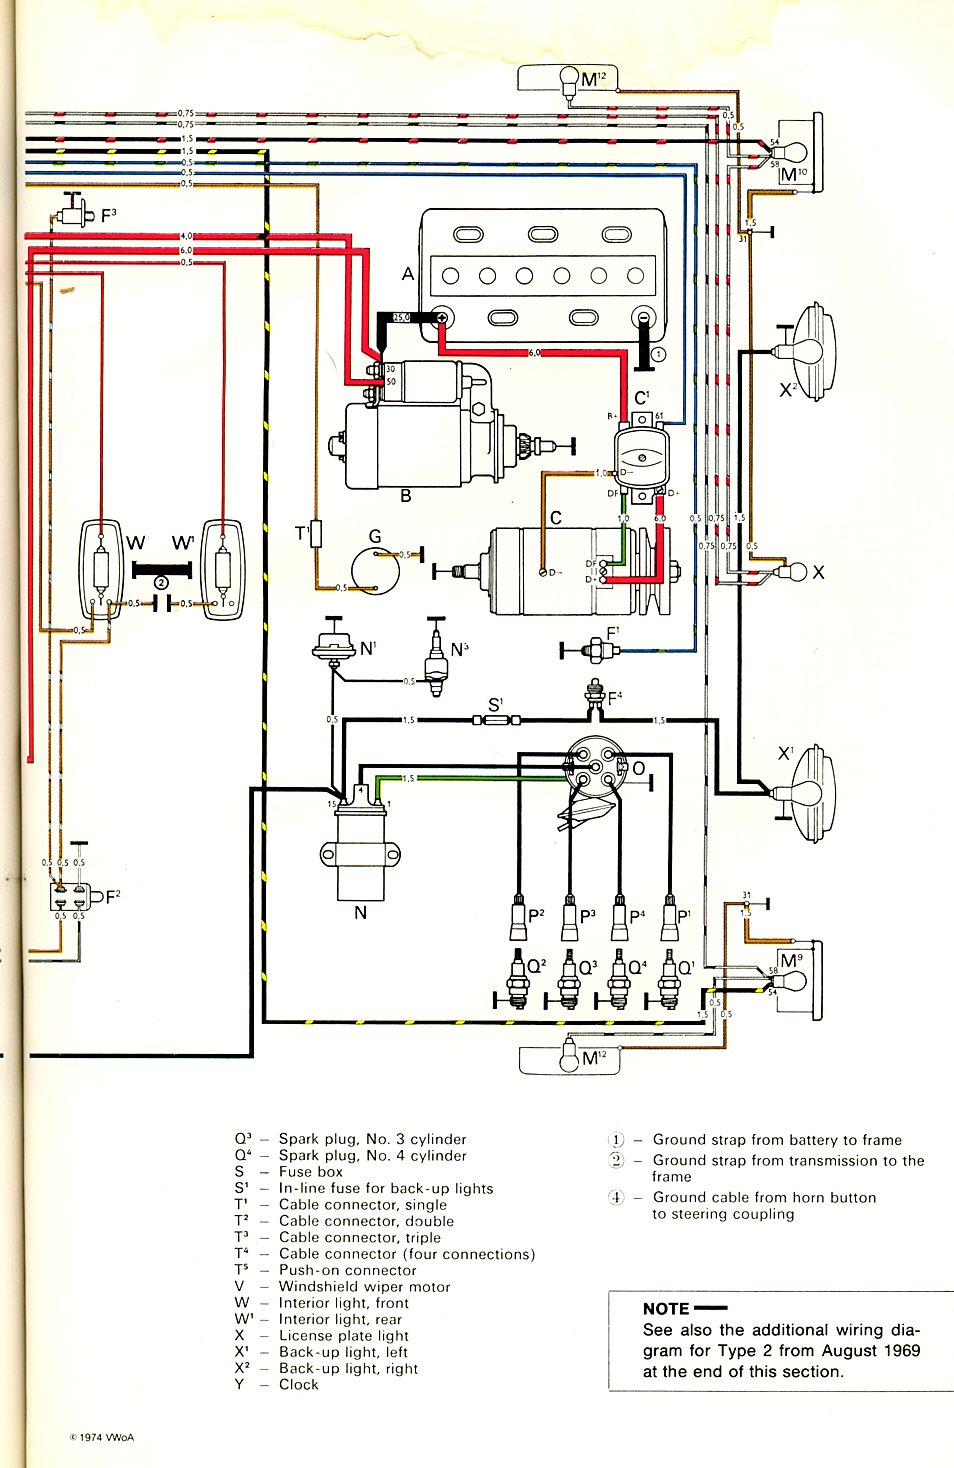 Thesamba type 2 wiring diagrams asfbconference2016 Images